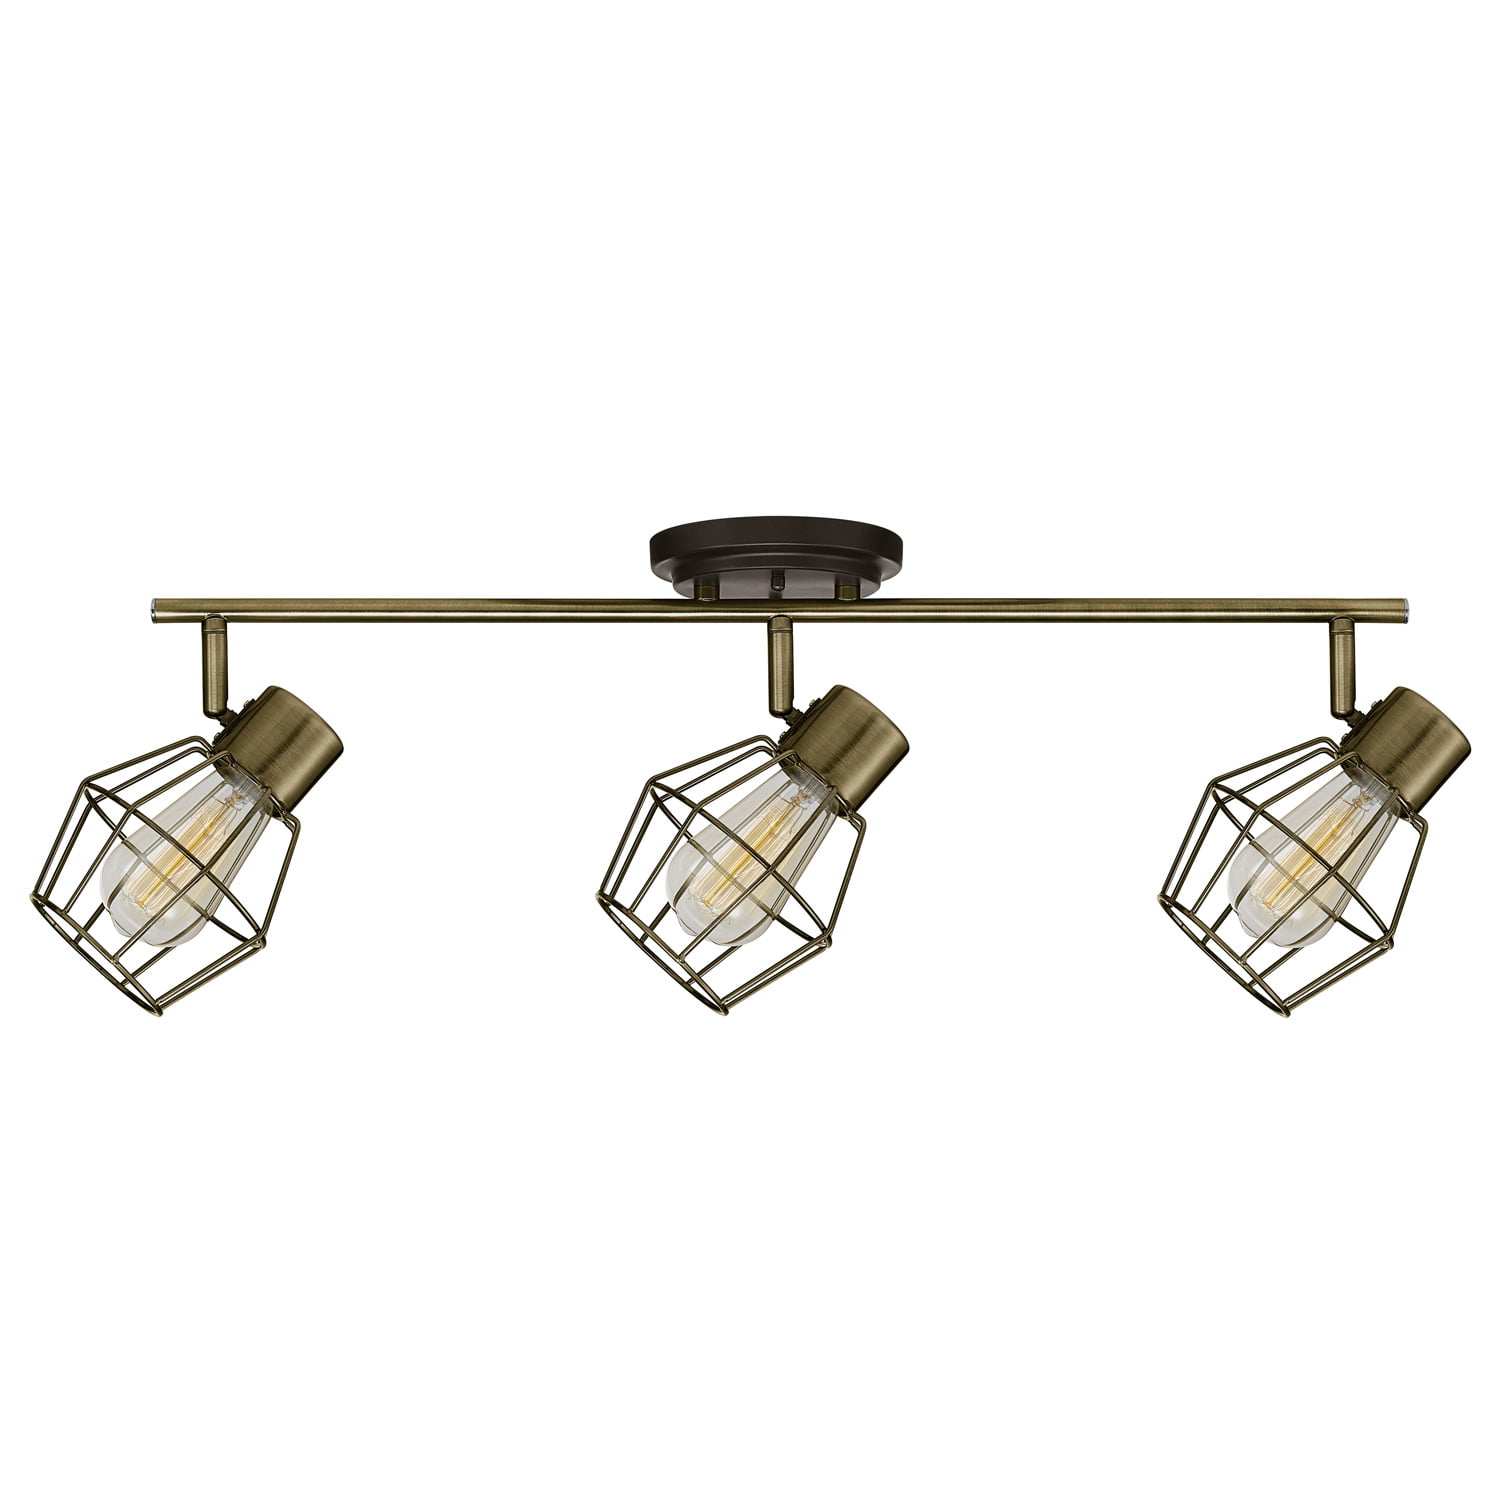 Globe Electric 60 Watt Jax 3-Light Antique Pewter Track Light, Bulbs Included by Globe Electric